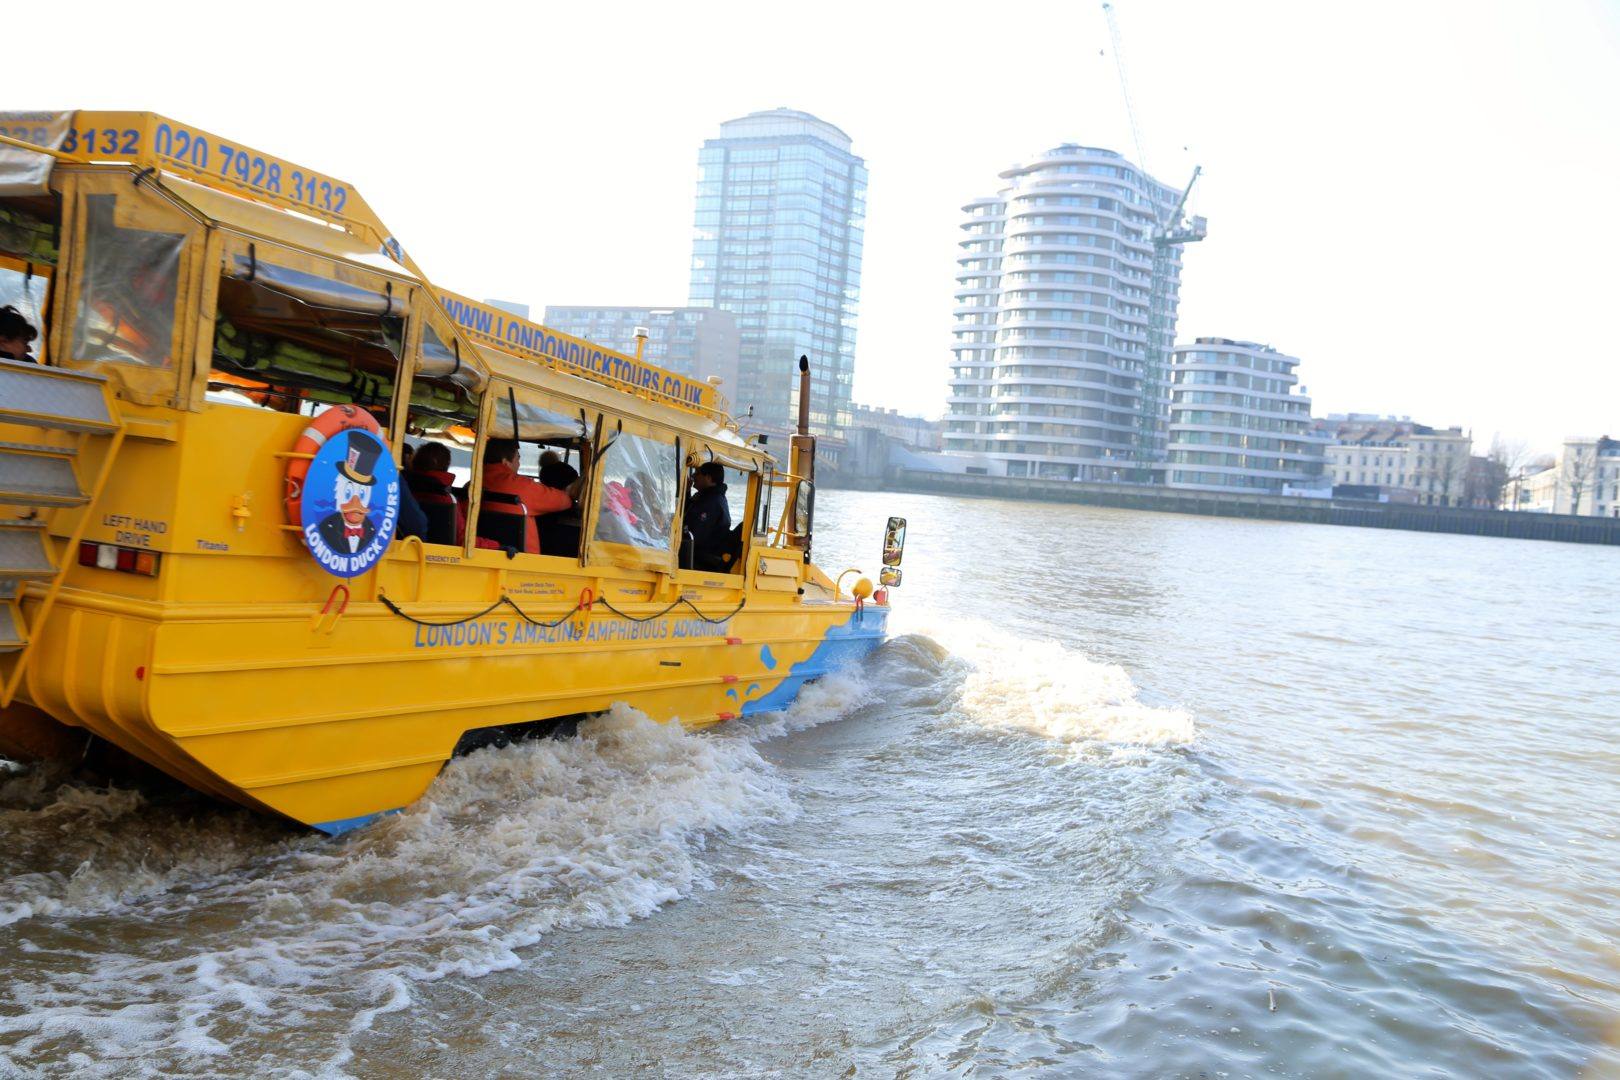 (c) London Duck Tours Ltd